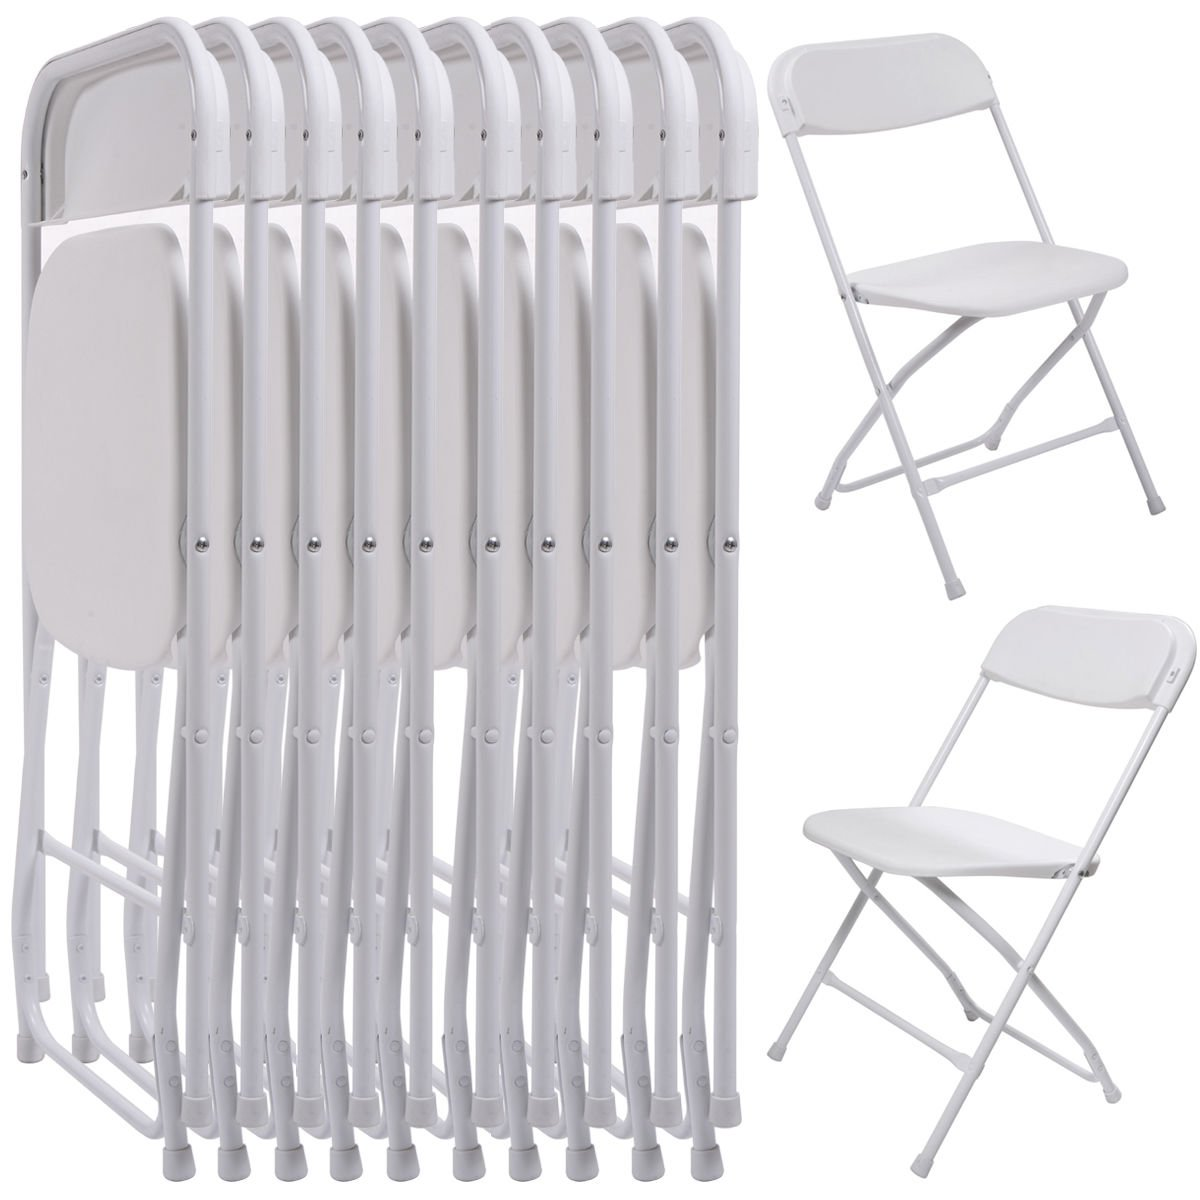 Lounge Chair Restaurant Chairs White Rent Chair Activities Rest Eat Commercial Wedding Stackable Plastic Quality (10 Pack) for Parties, Banquets, Sporting Events, Graduations, School Functions by Heavens Tvcz